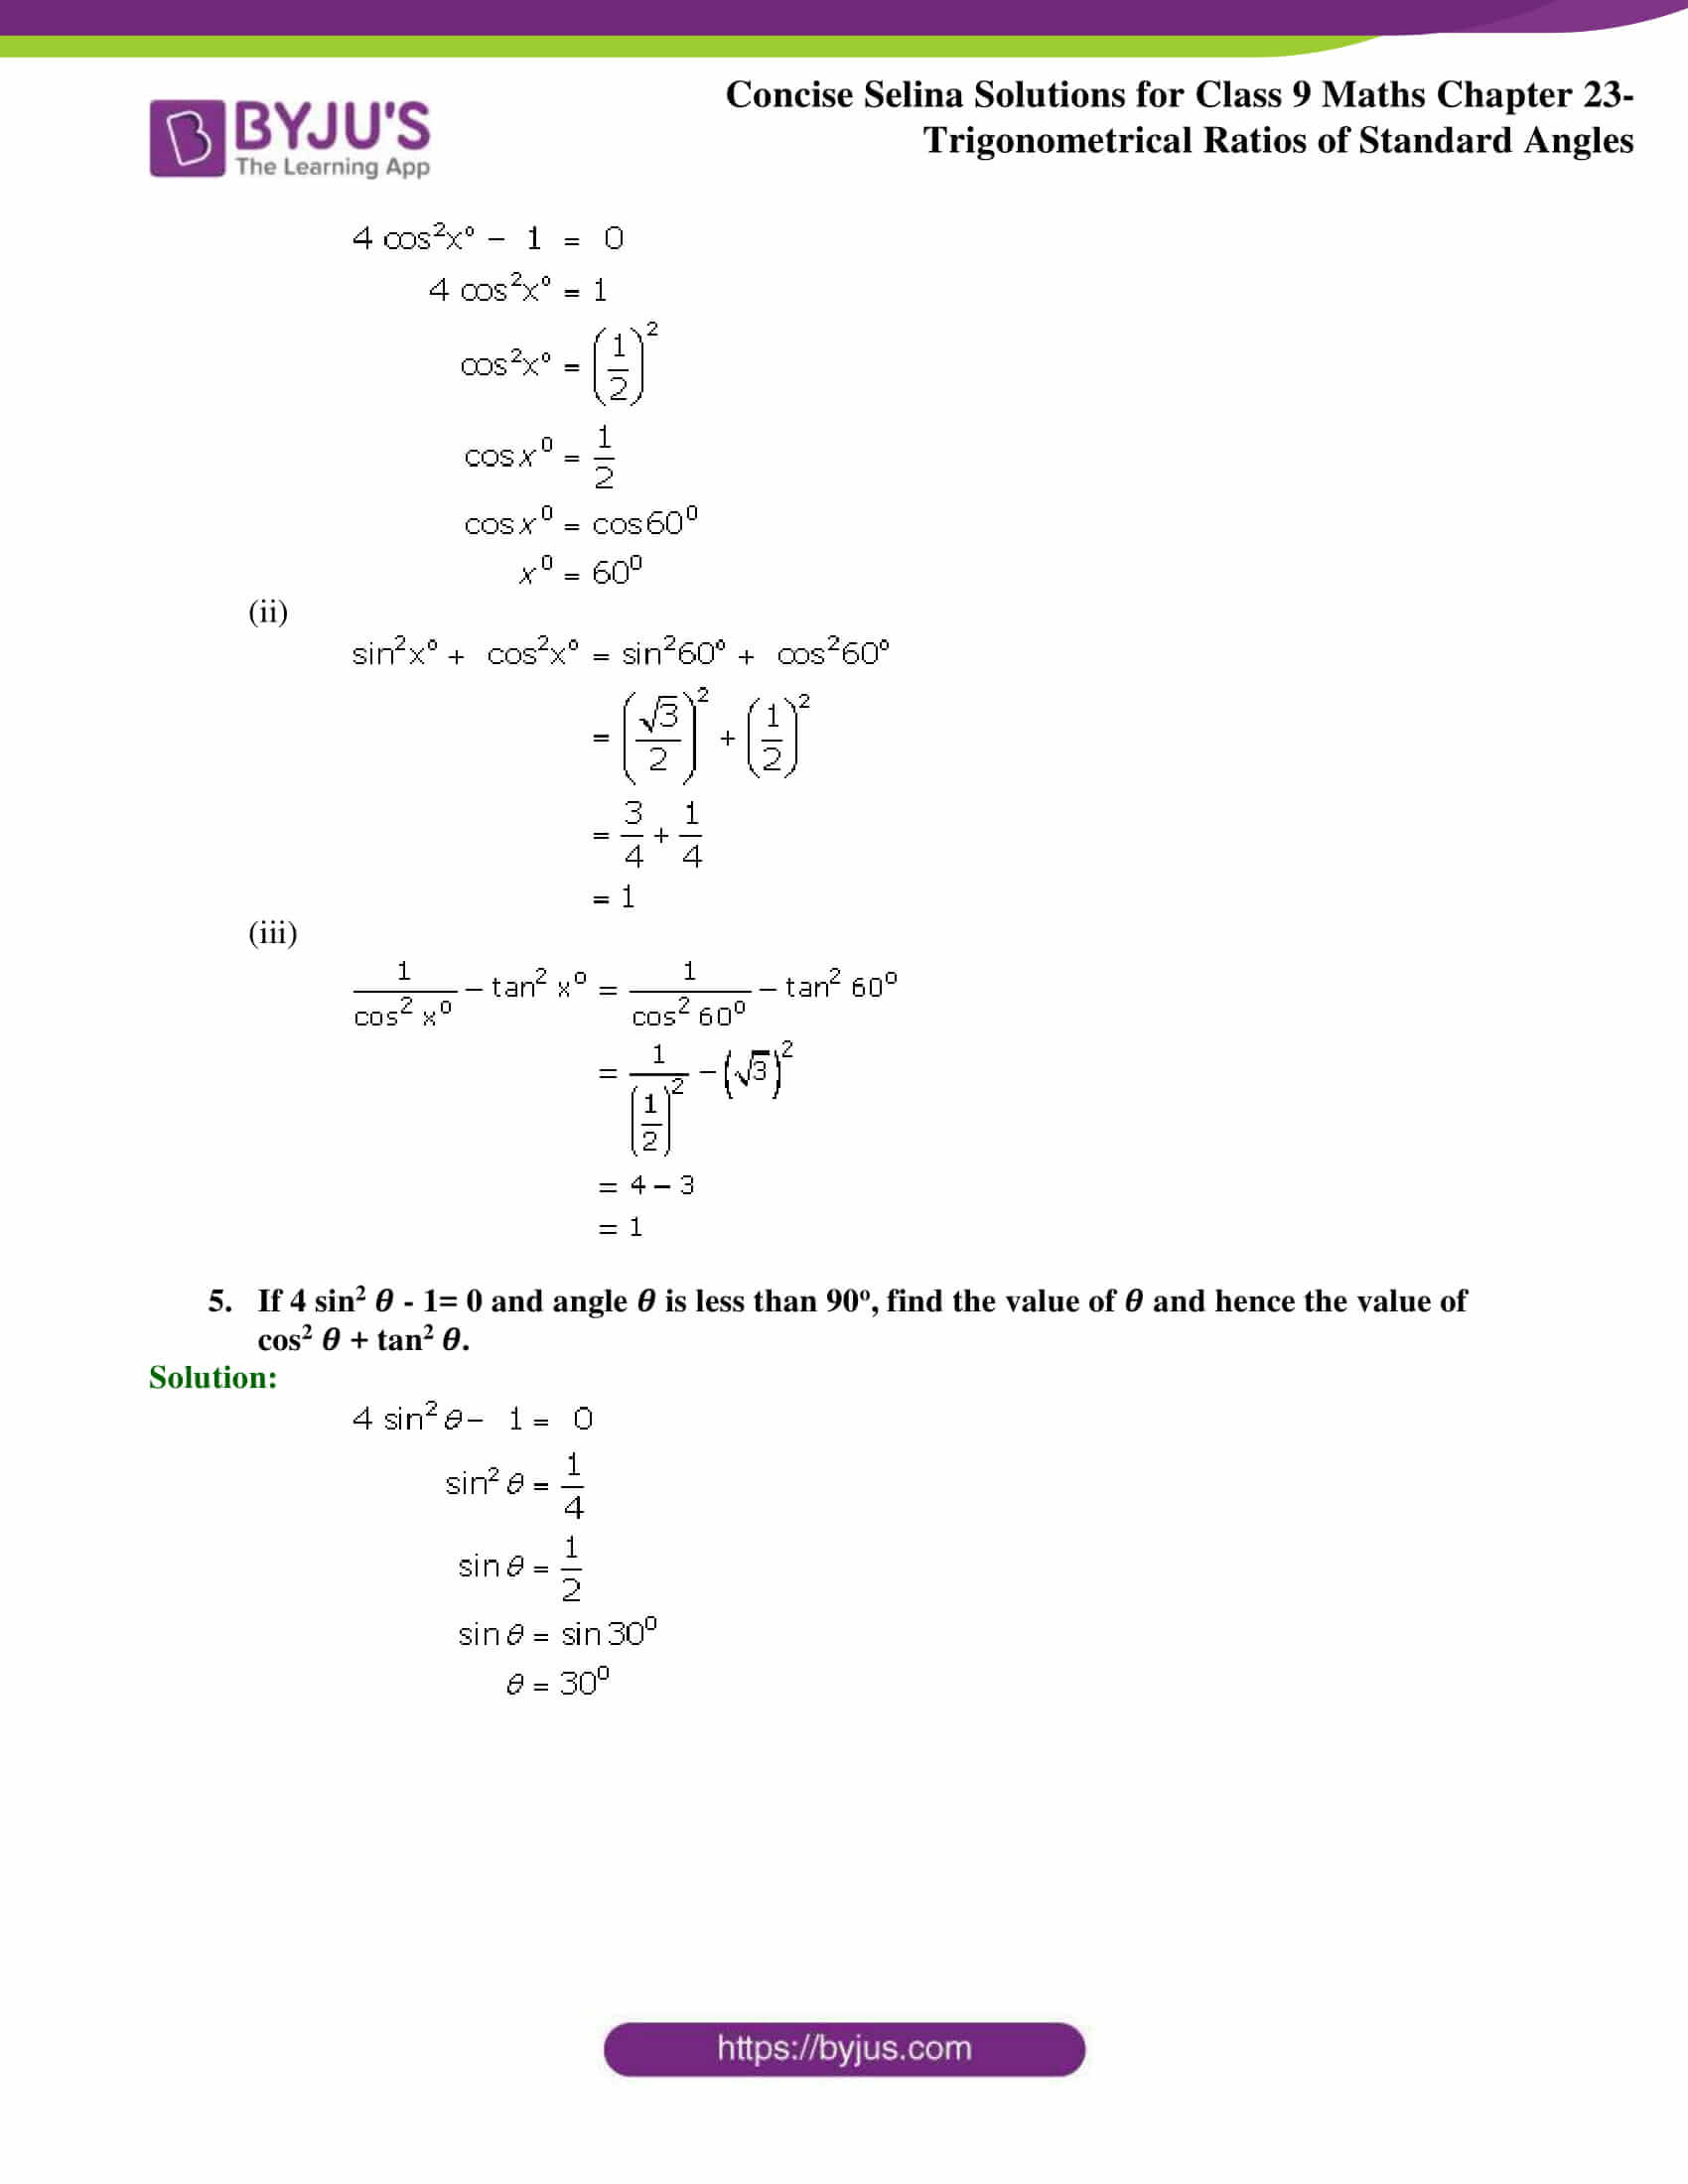 Concise Selina Solutions Class 9 Maths Chapter 23 part 23